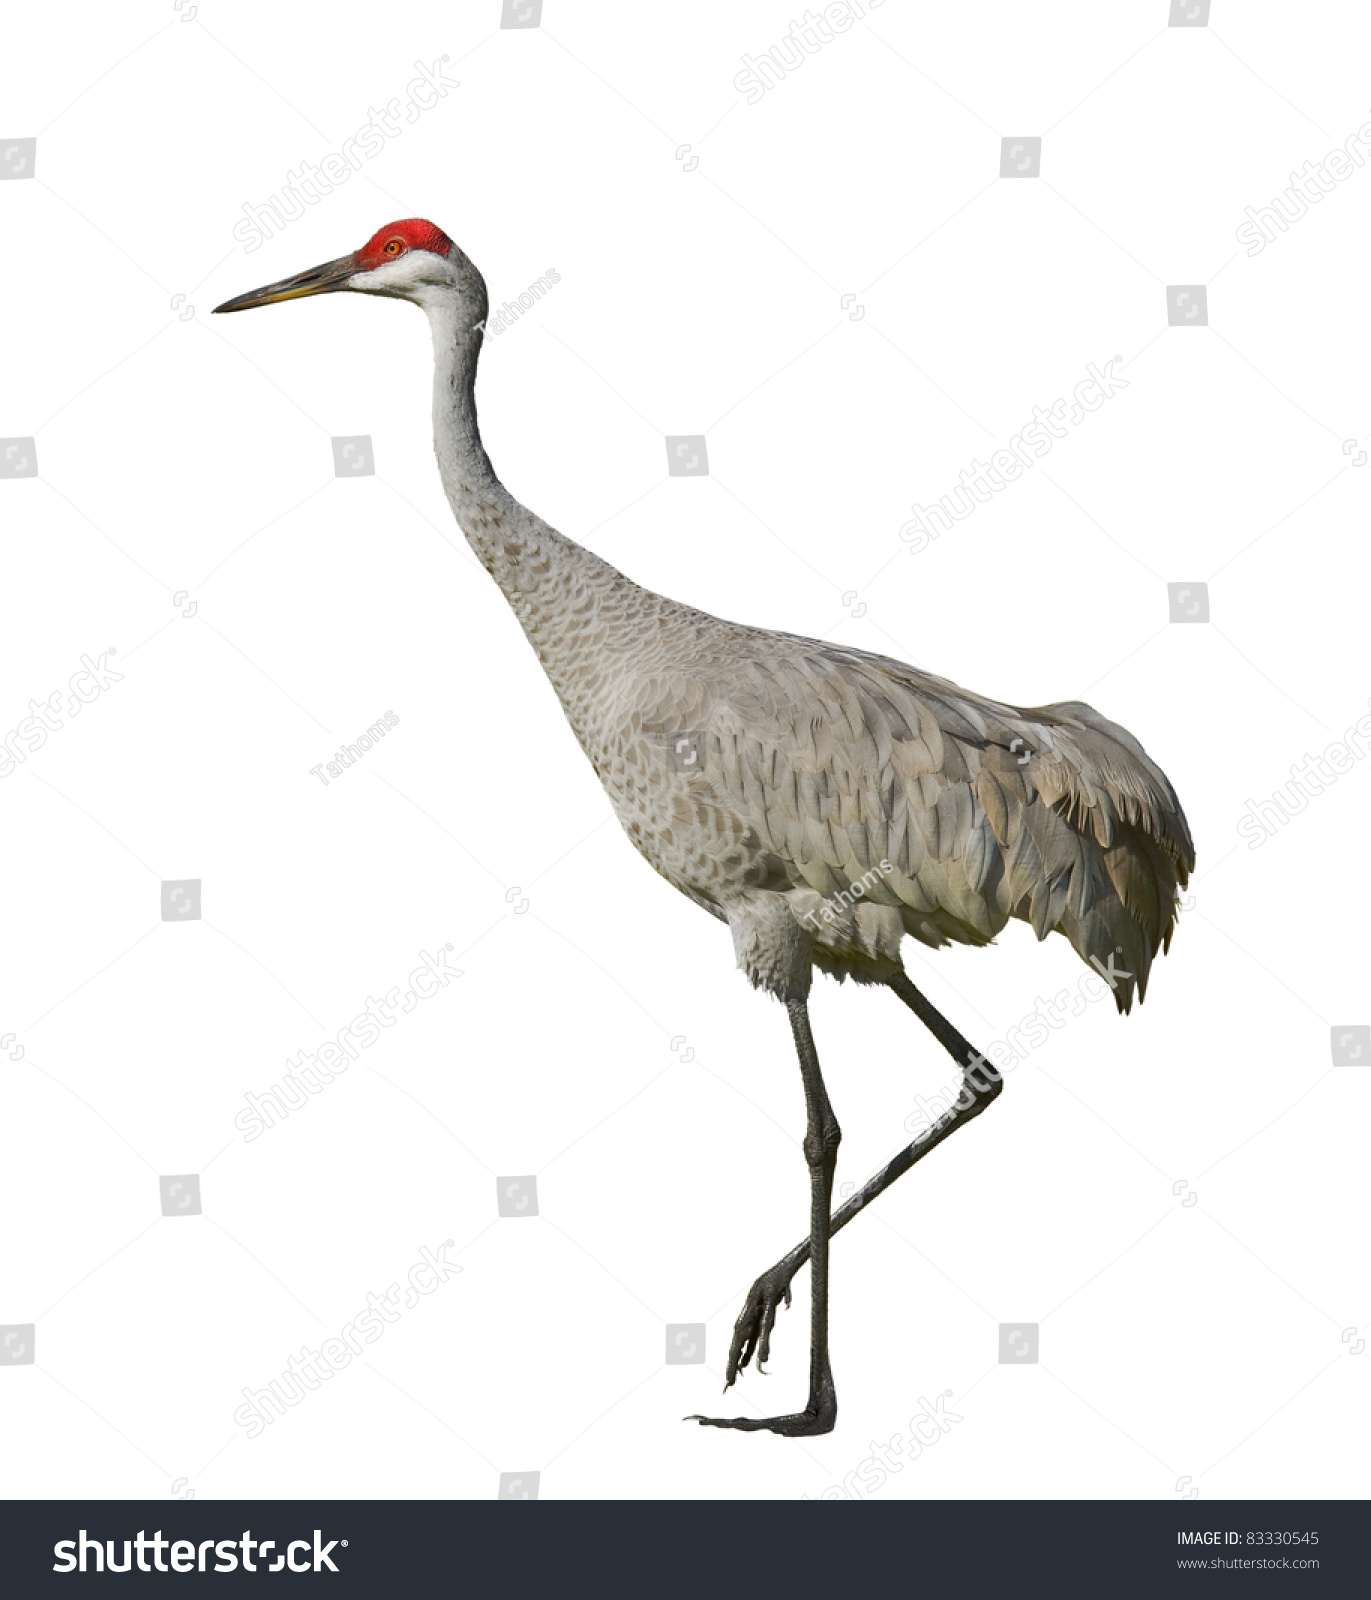 Sandhill crane, isolated on white. Latin name - Grus cannadensis.